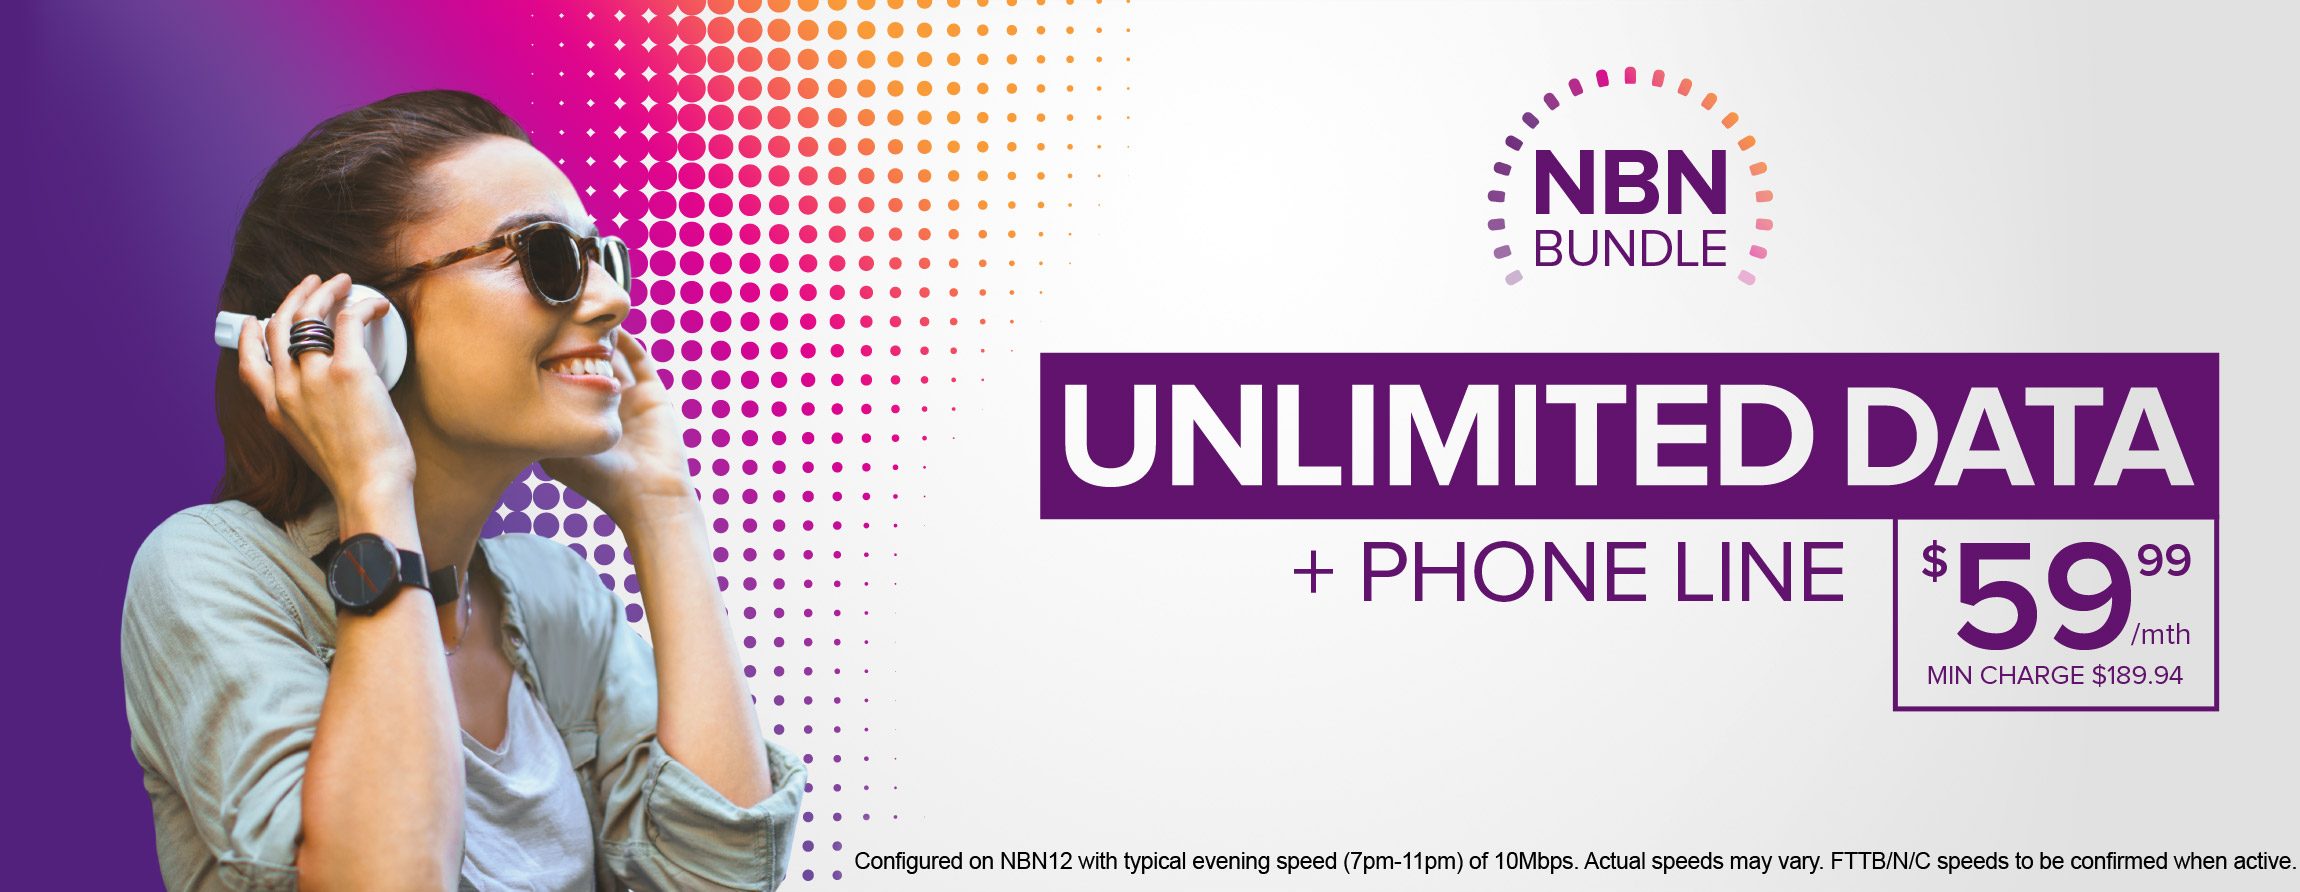 NBN with Phone Bundle - Unlimited Data for $59.99 per month